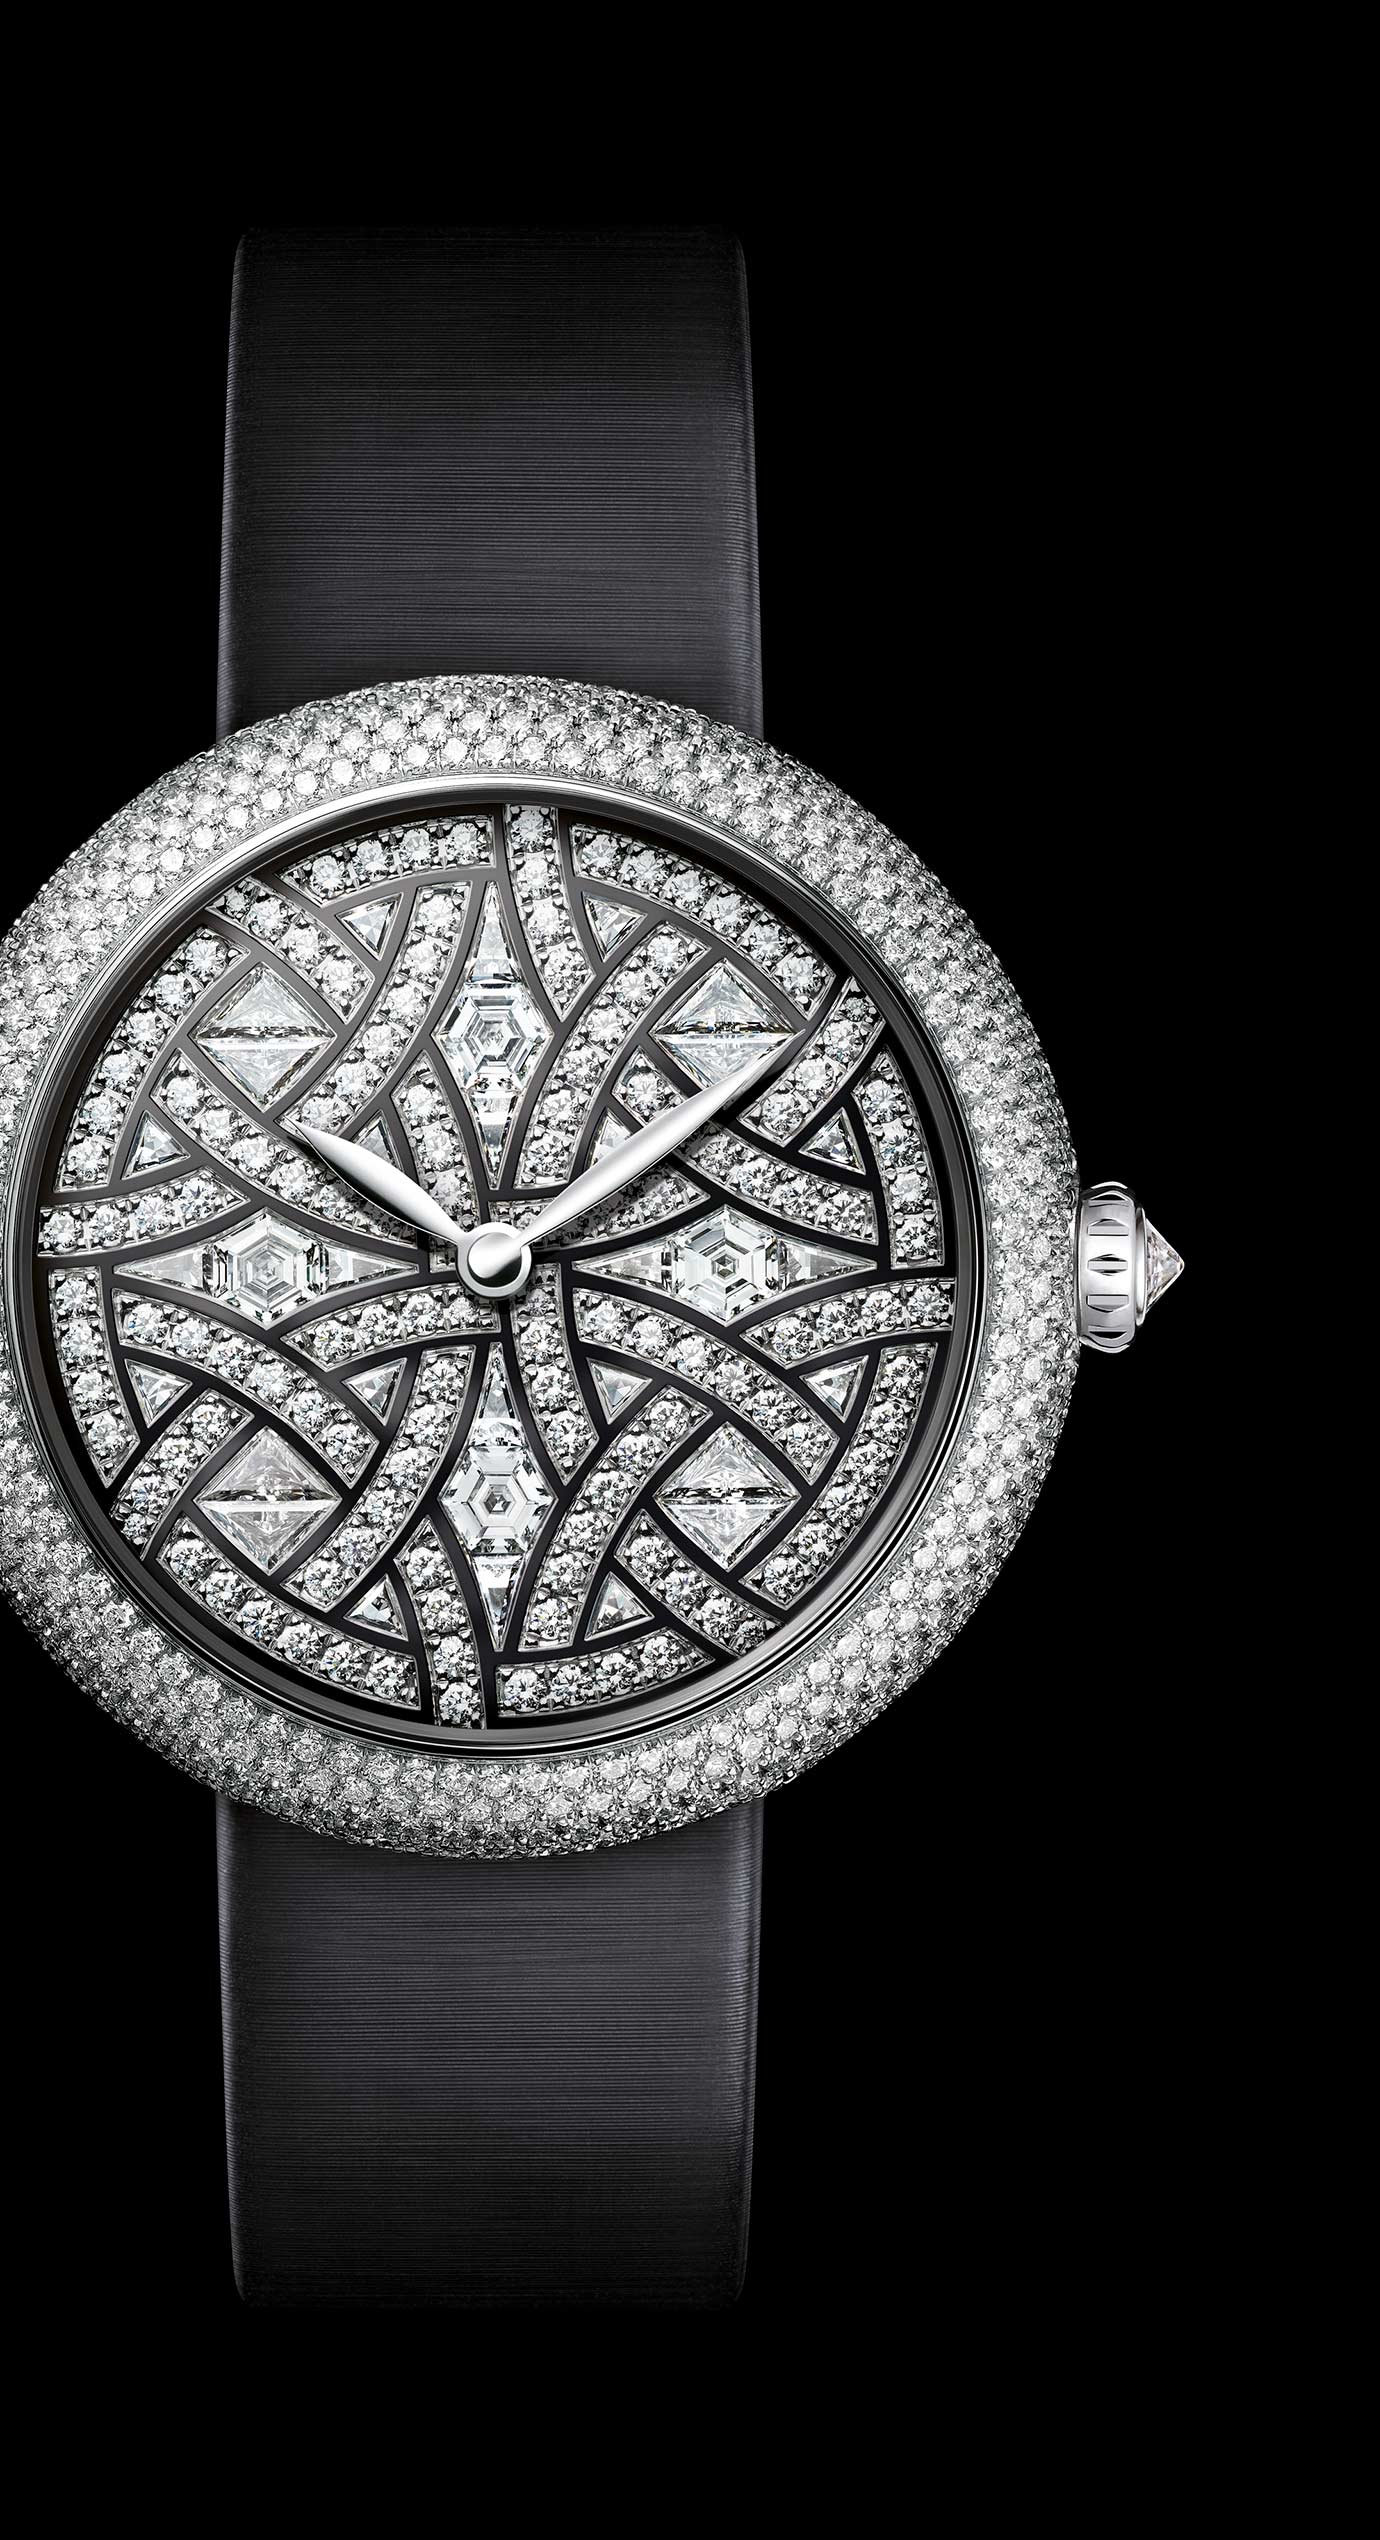 Mademoiselle Privé watch - White gold and diamonds. - Enlarged view